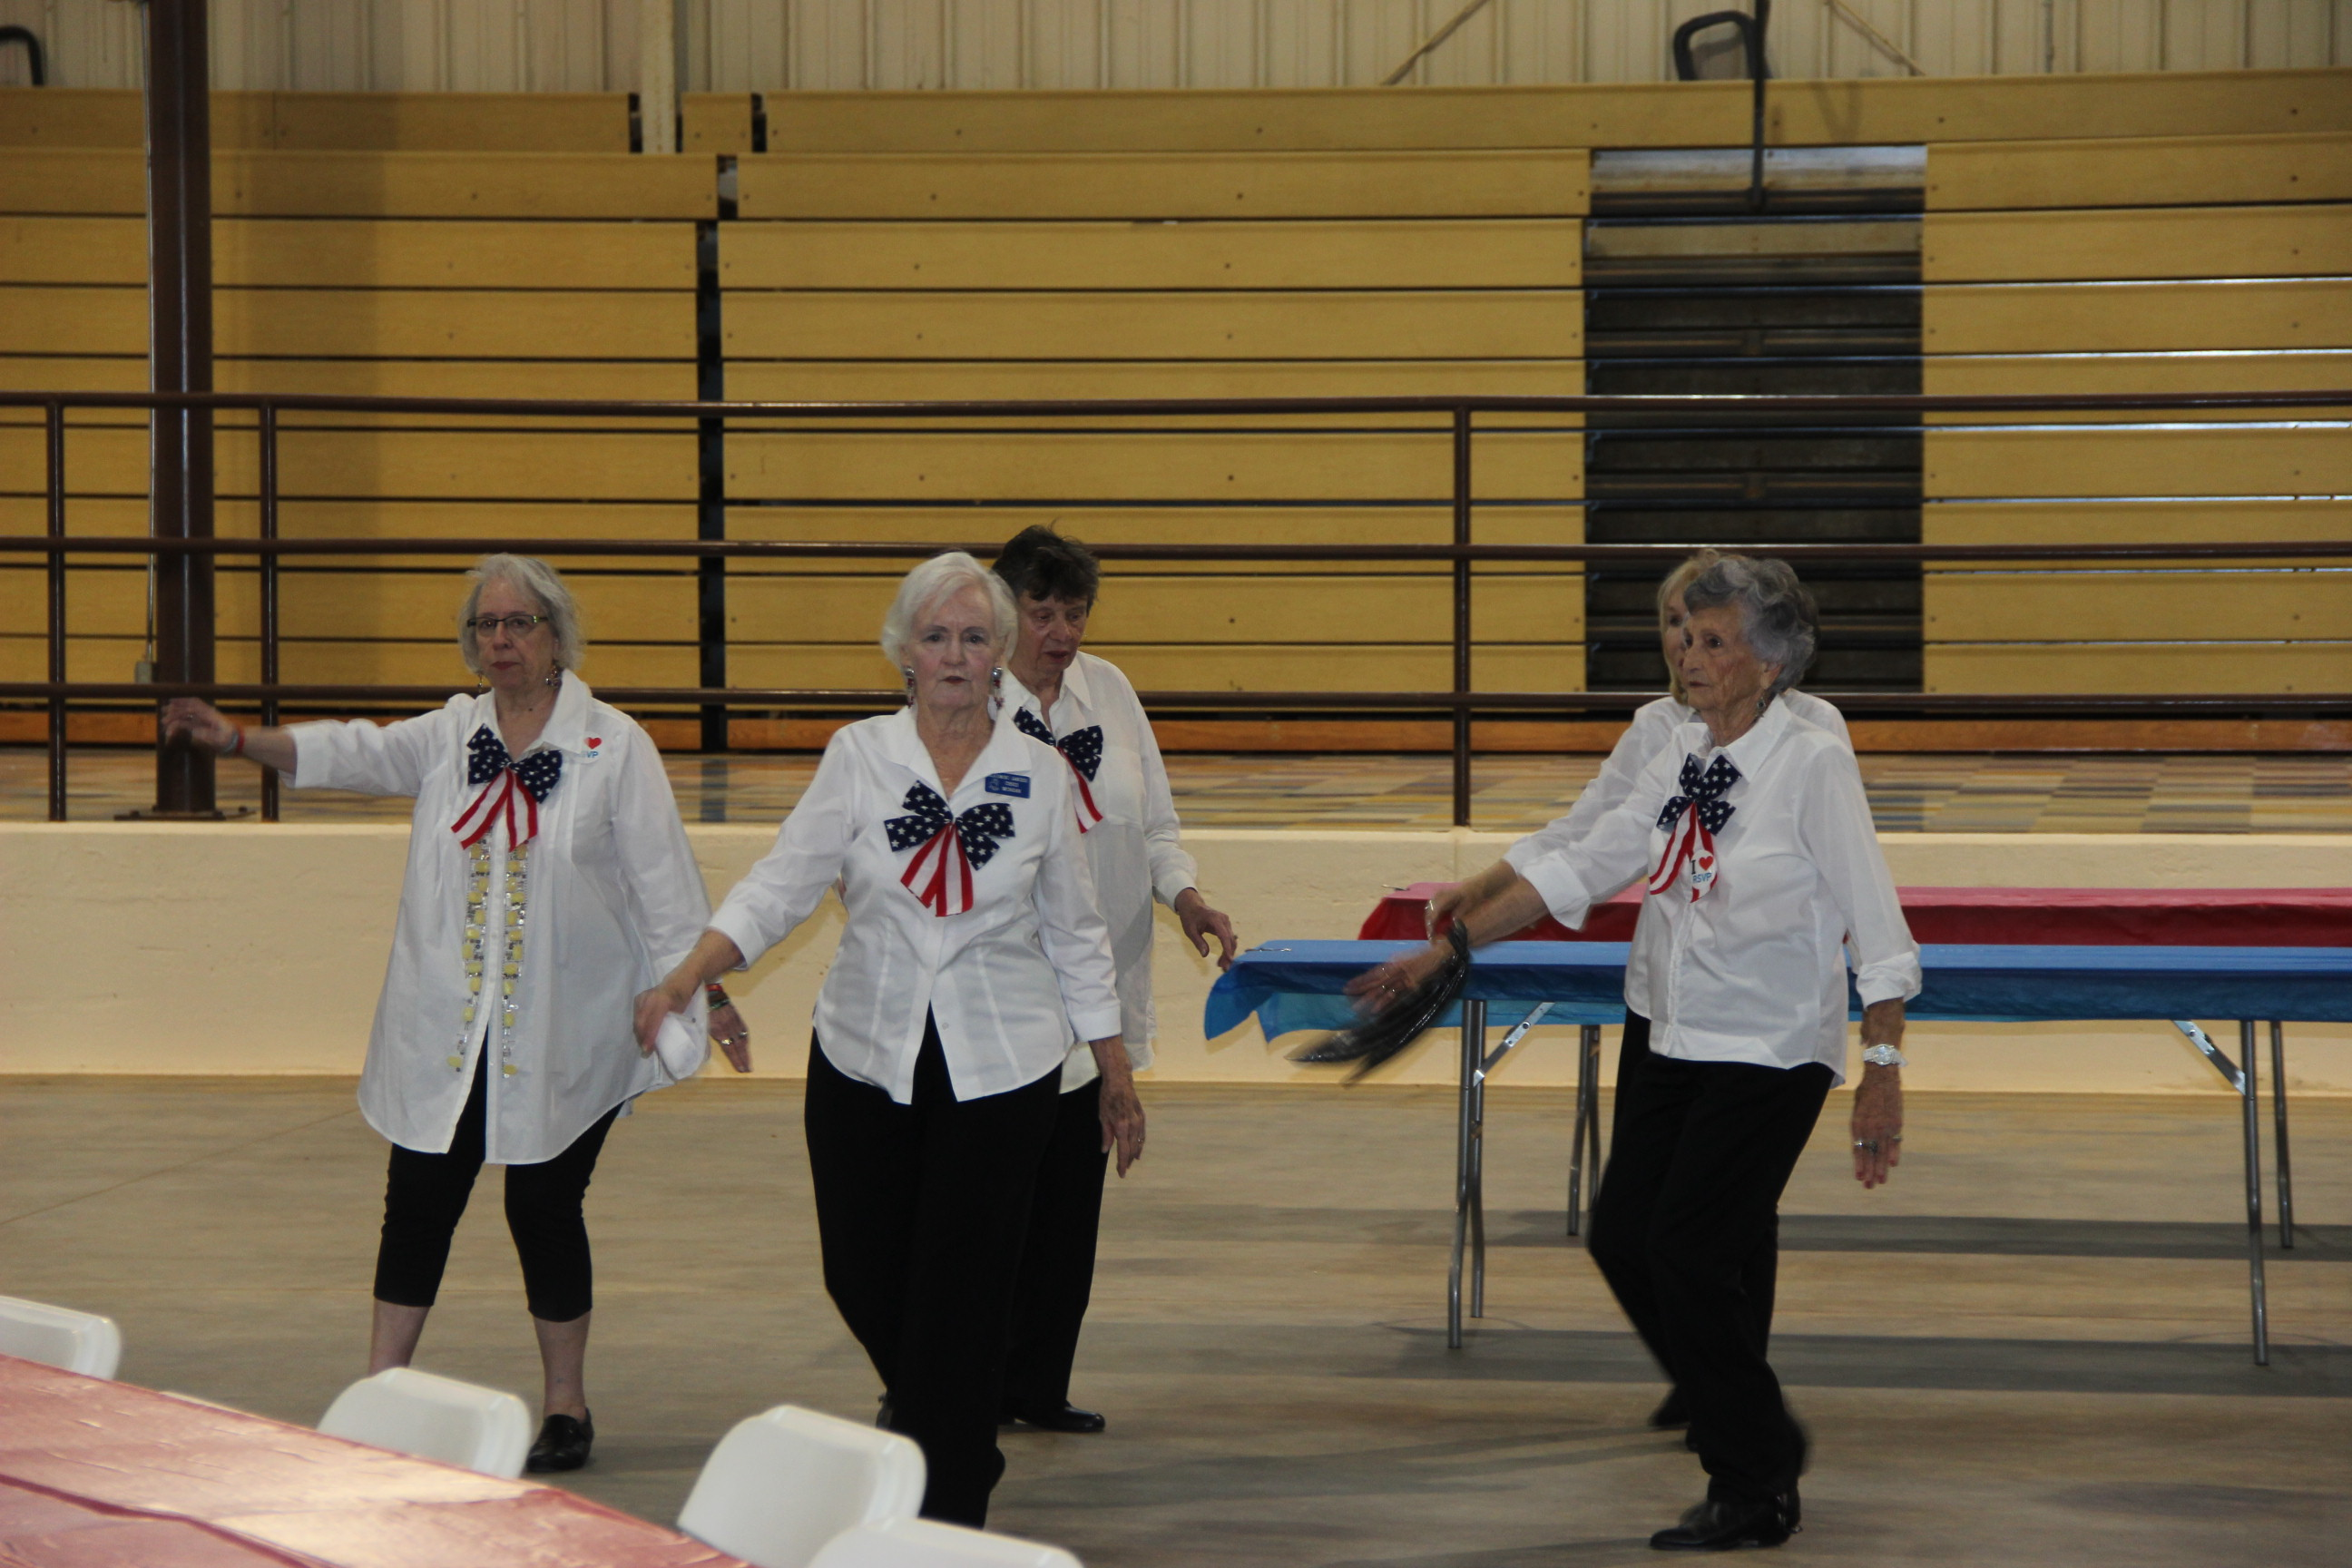 Image of Heardmont Senior Center dancers